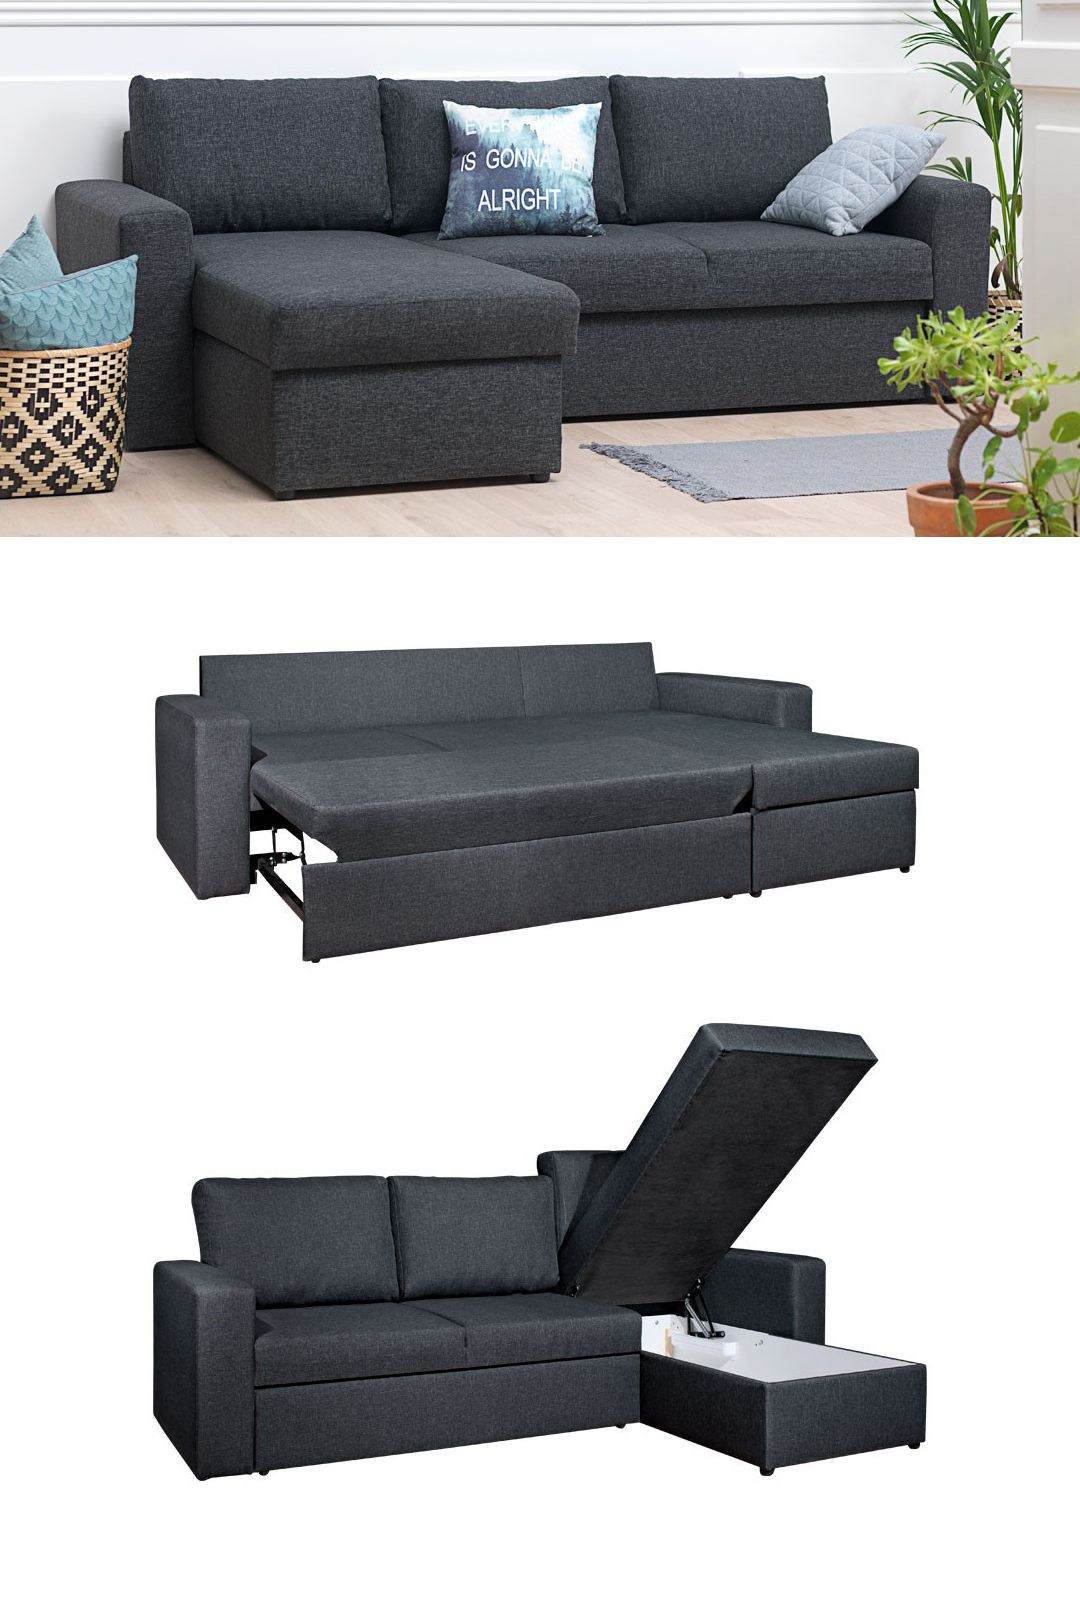 Mariager Reversible Sofa Bed Offers Pull Out Bed And Storage